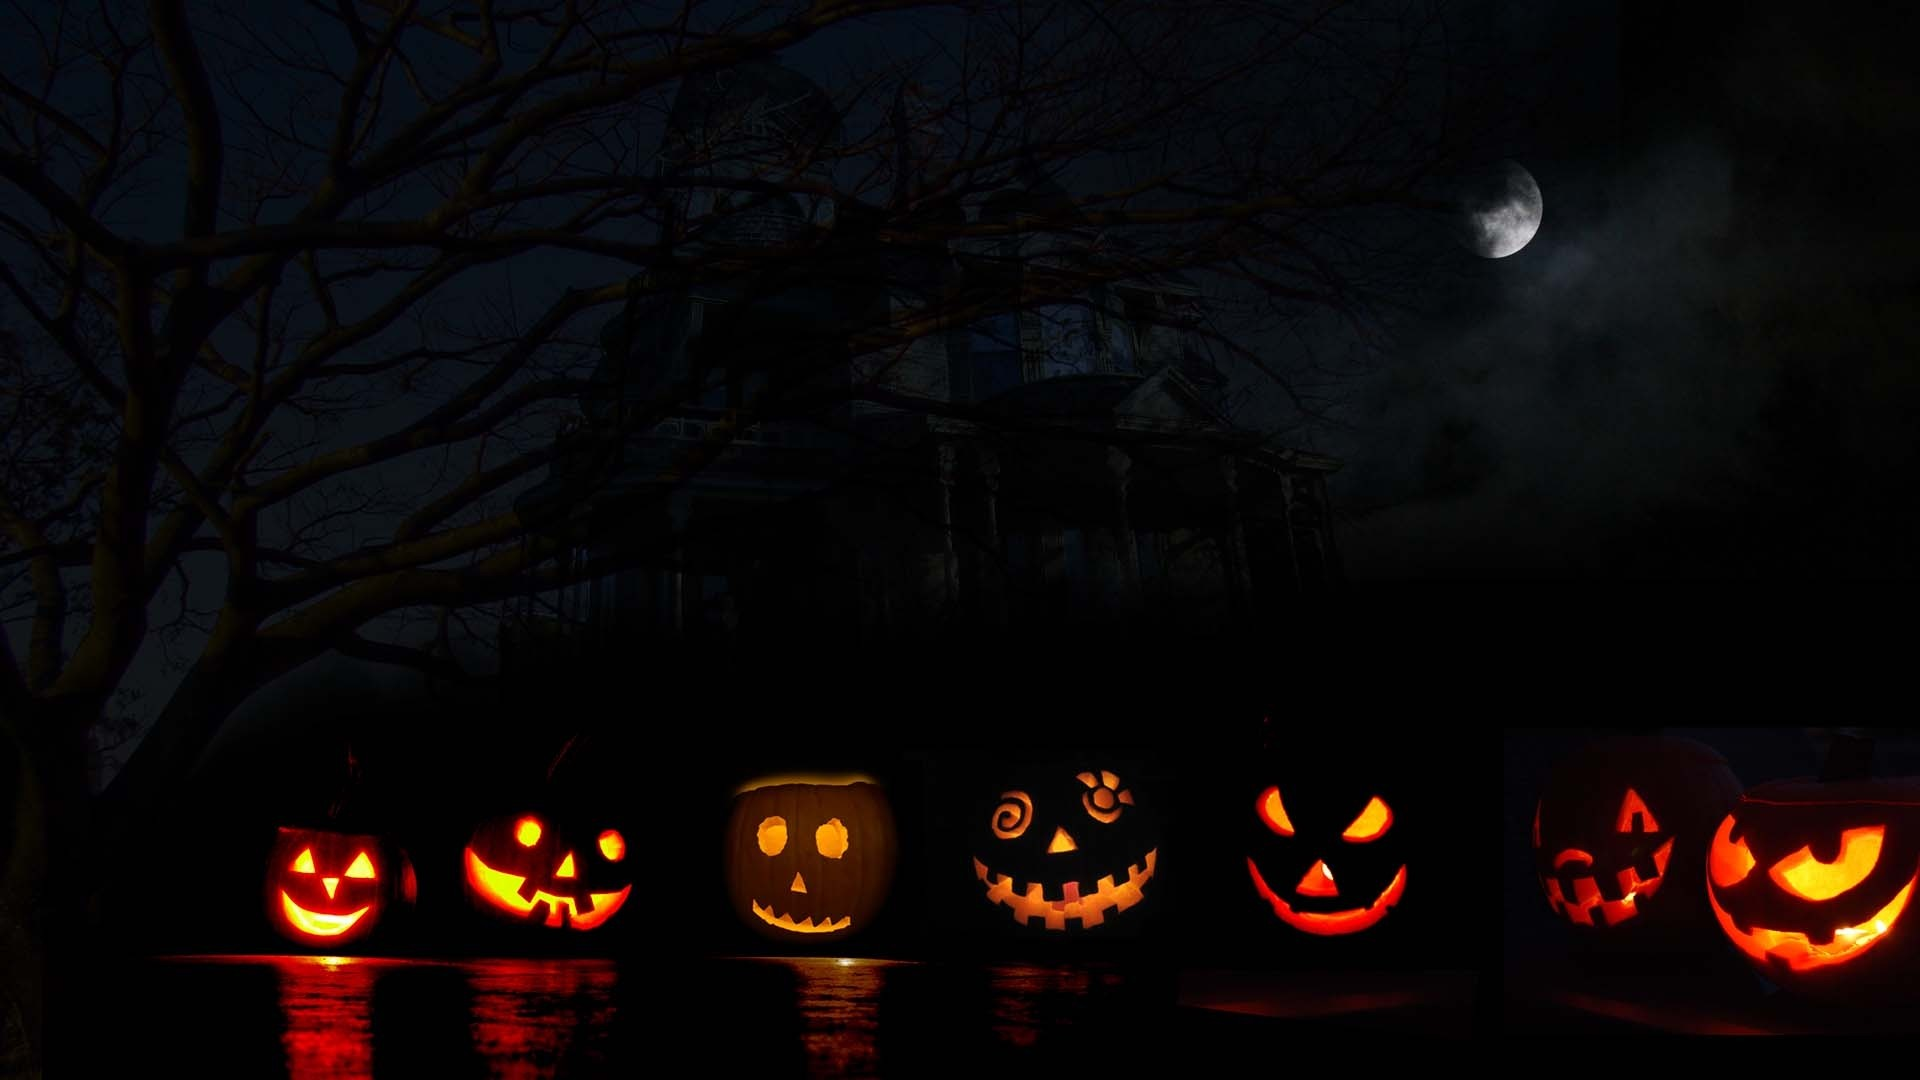 1920x1080 Widescreen-Halloween-wallpaper-wpt76010038